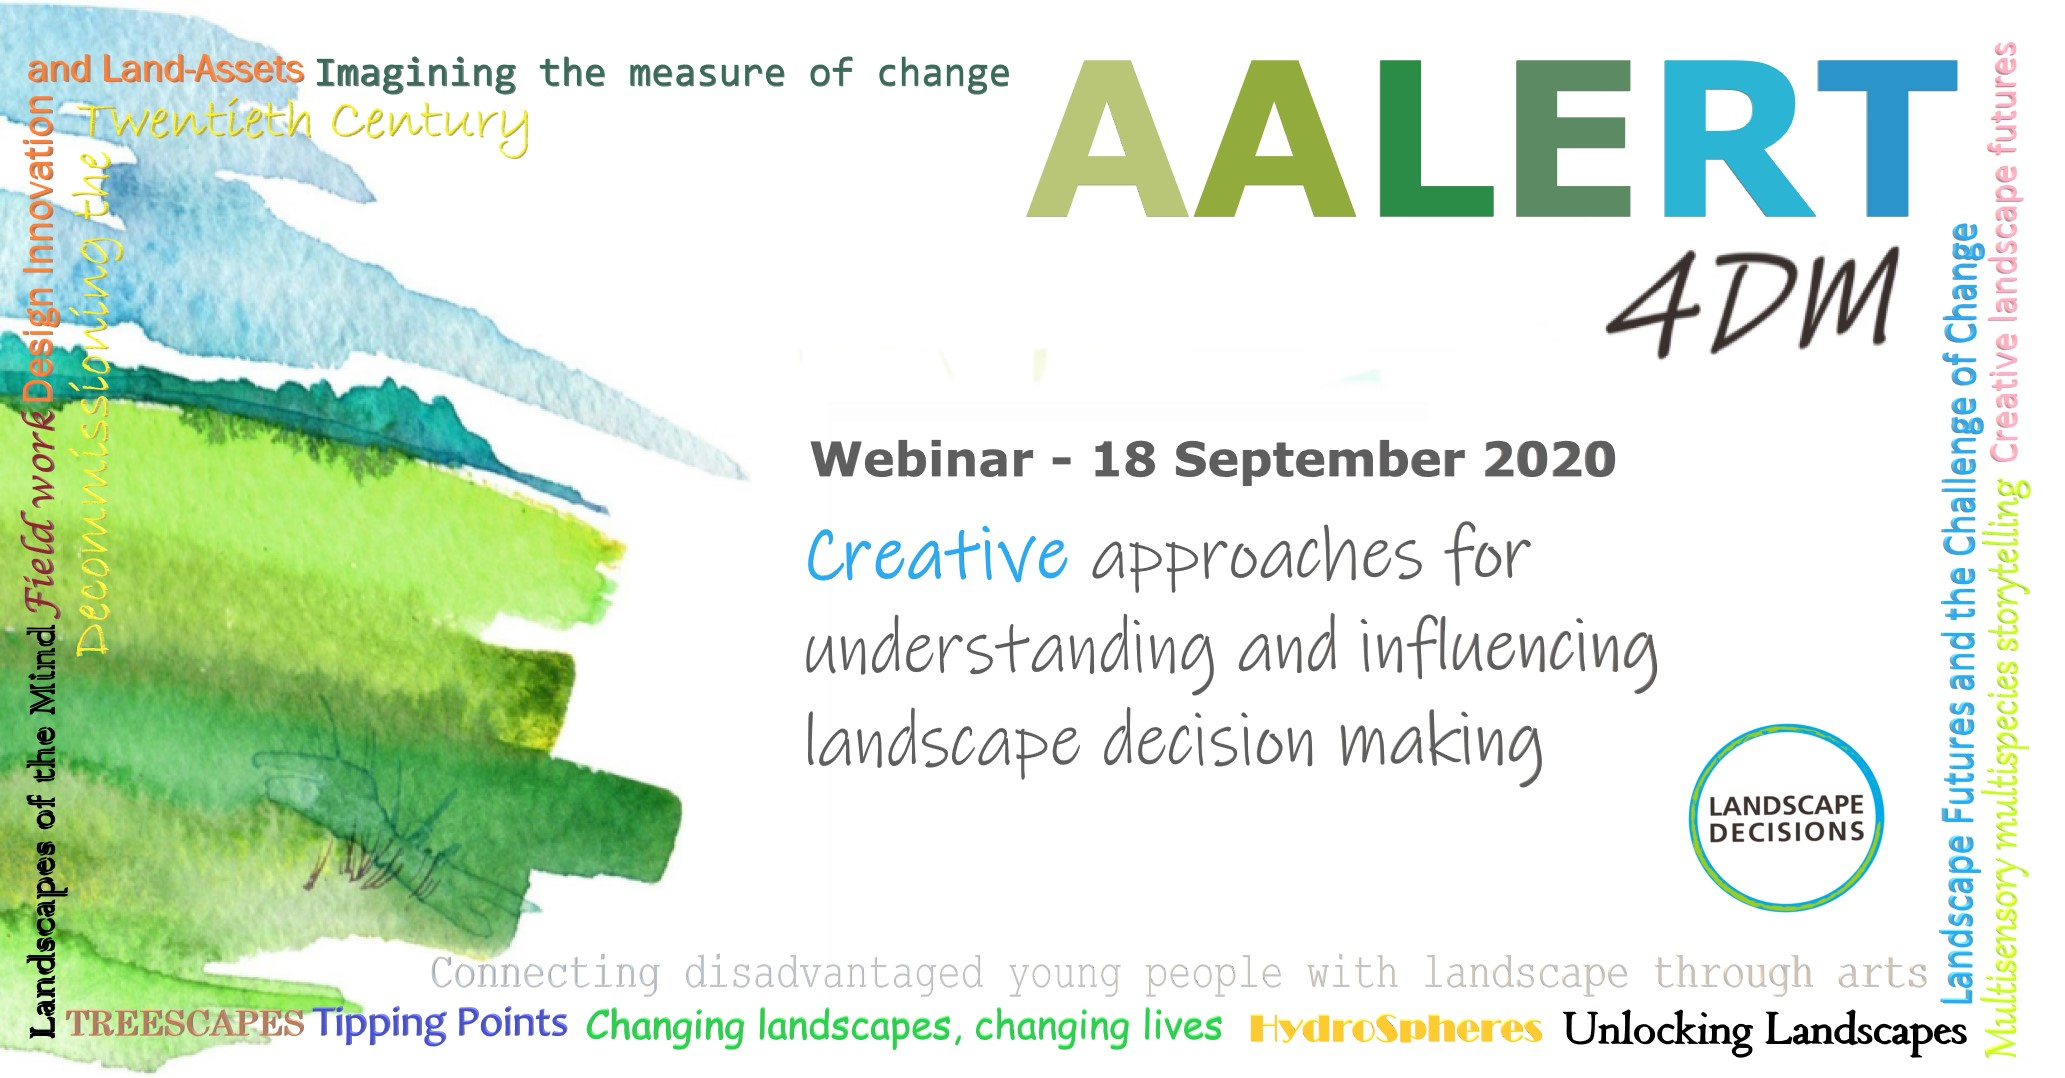 Creative approaches for understanding and influencing landscape decision making